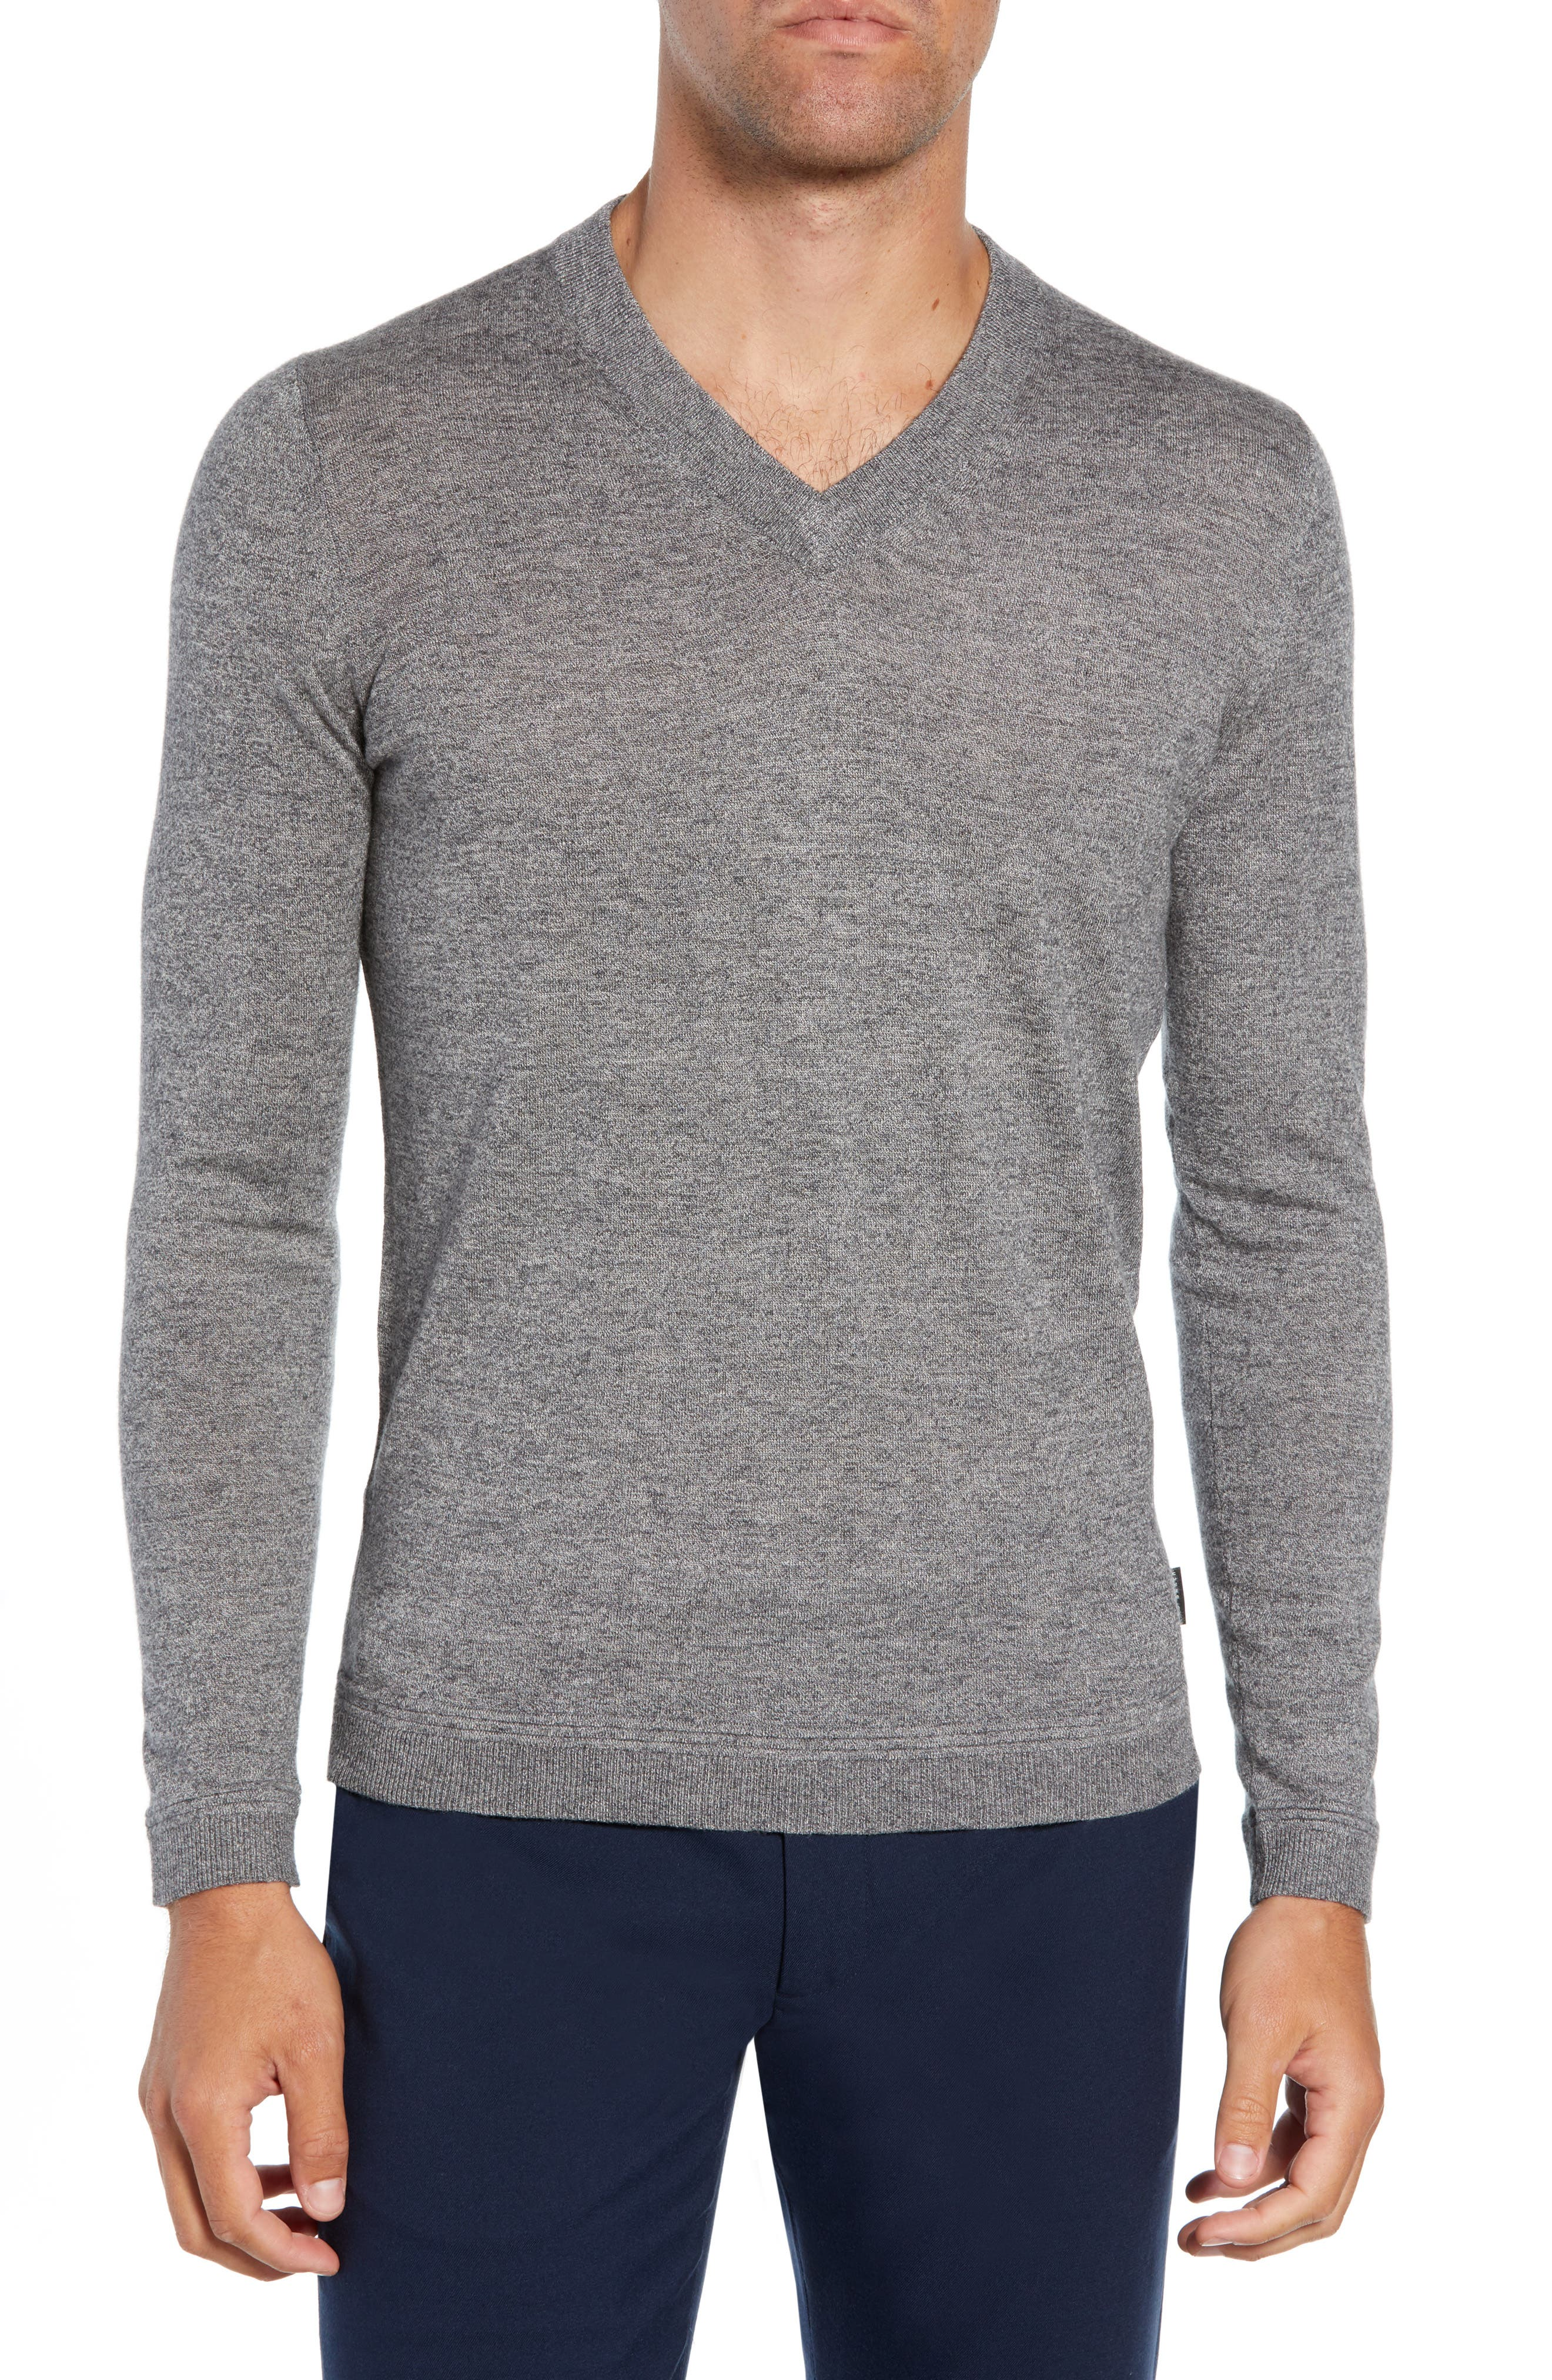 Noel Slim Fit V-Neck Wool Blend Sweater,                             Main thumbnail 1, color,                             GREY